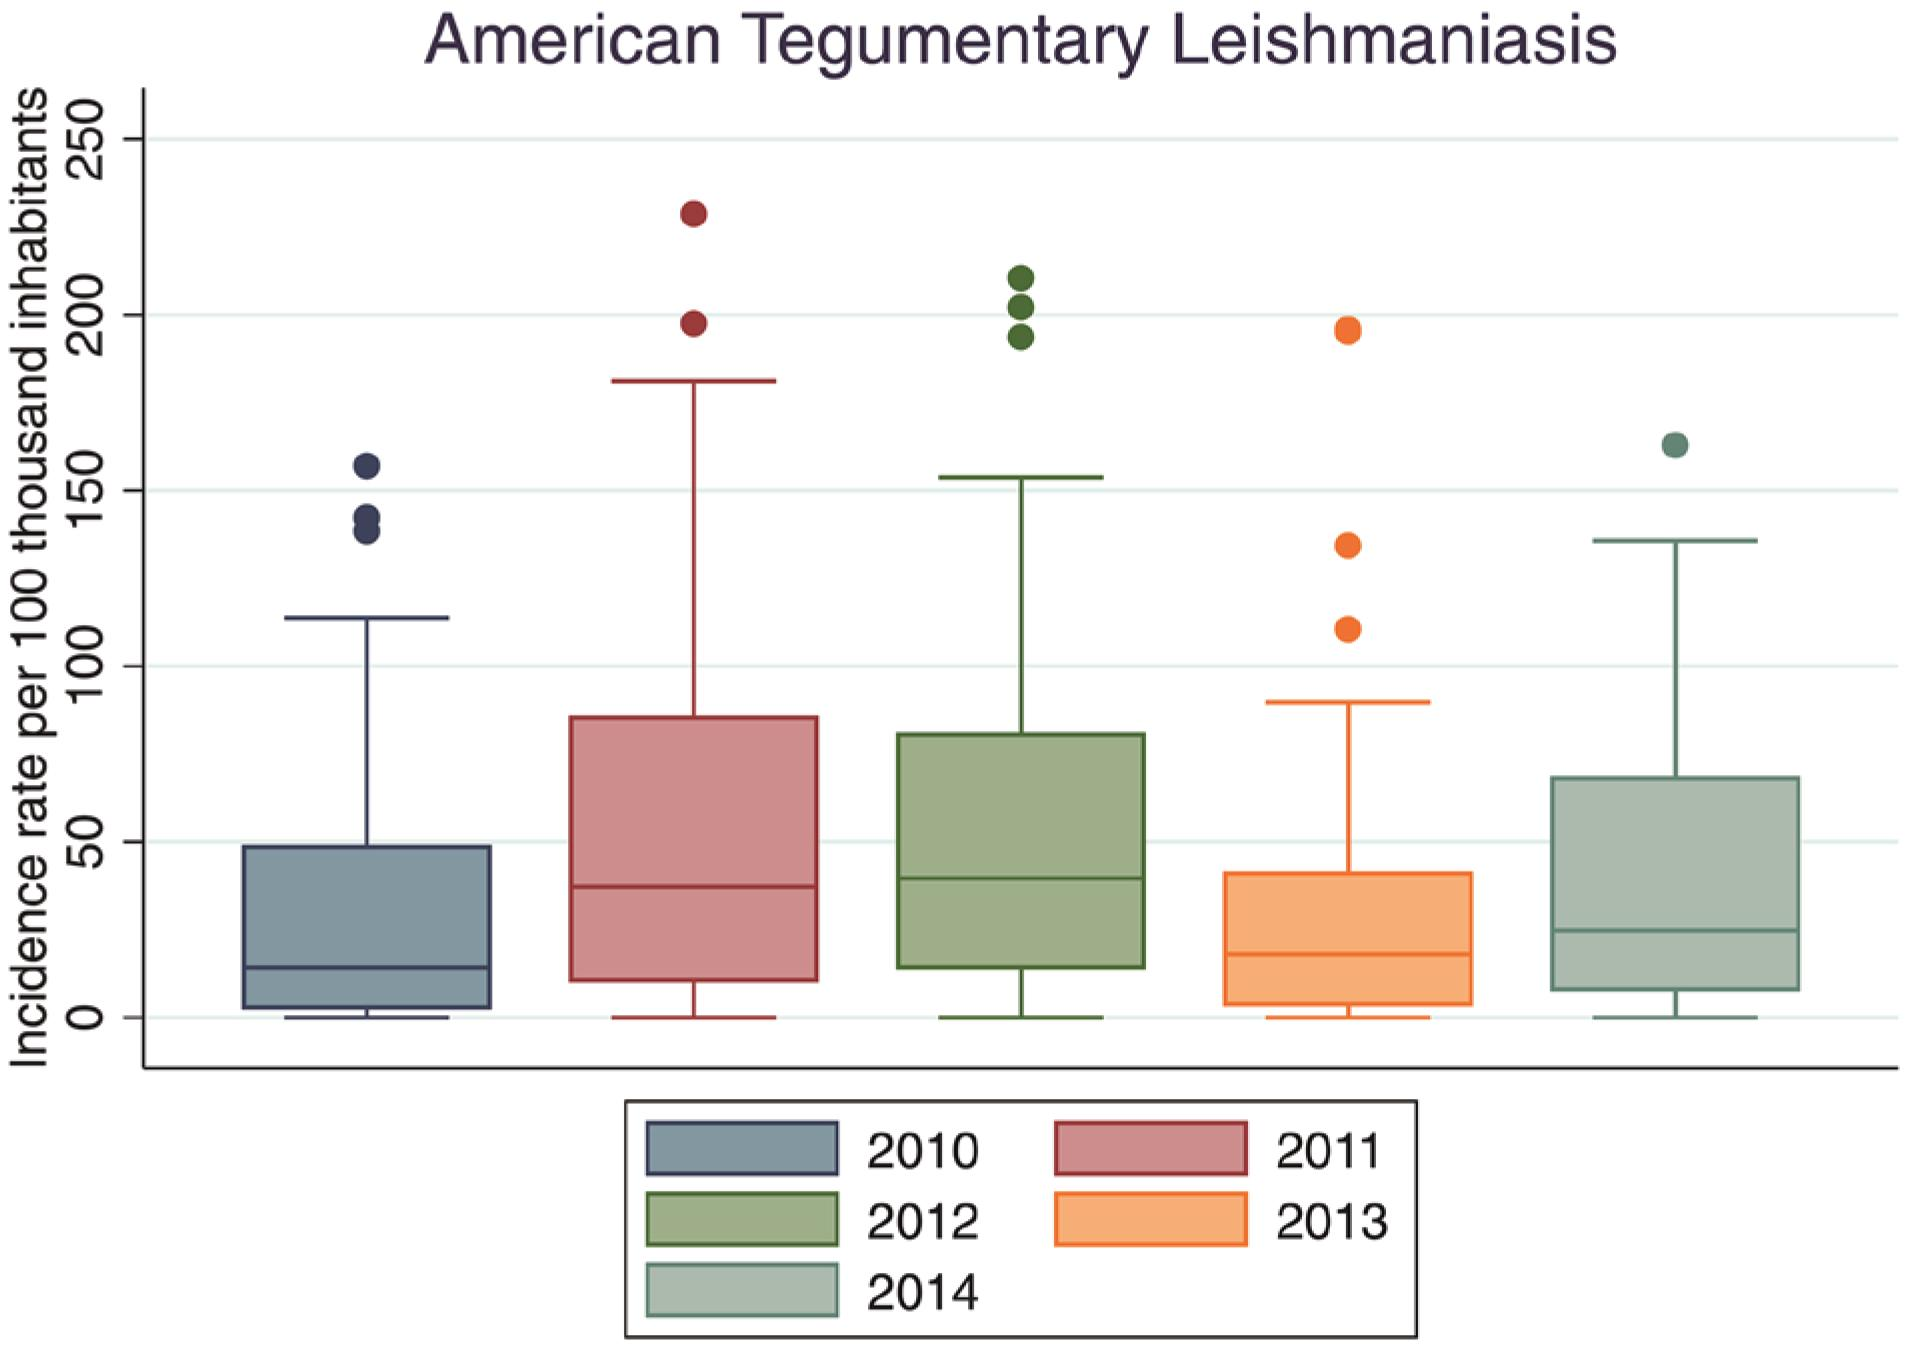 Incidence rate per 100,000 inhabitants of American Tegumentary Leishmaniasis, Amazonas, 2010-2014. *limited to 200 cases per 100,000 inhabitants, considering the incidence rate from 2010 to 2014.